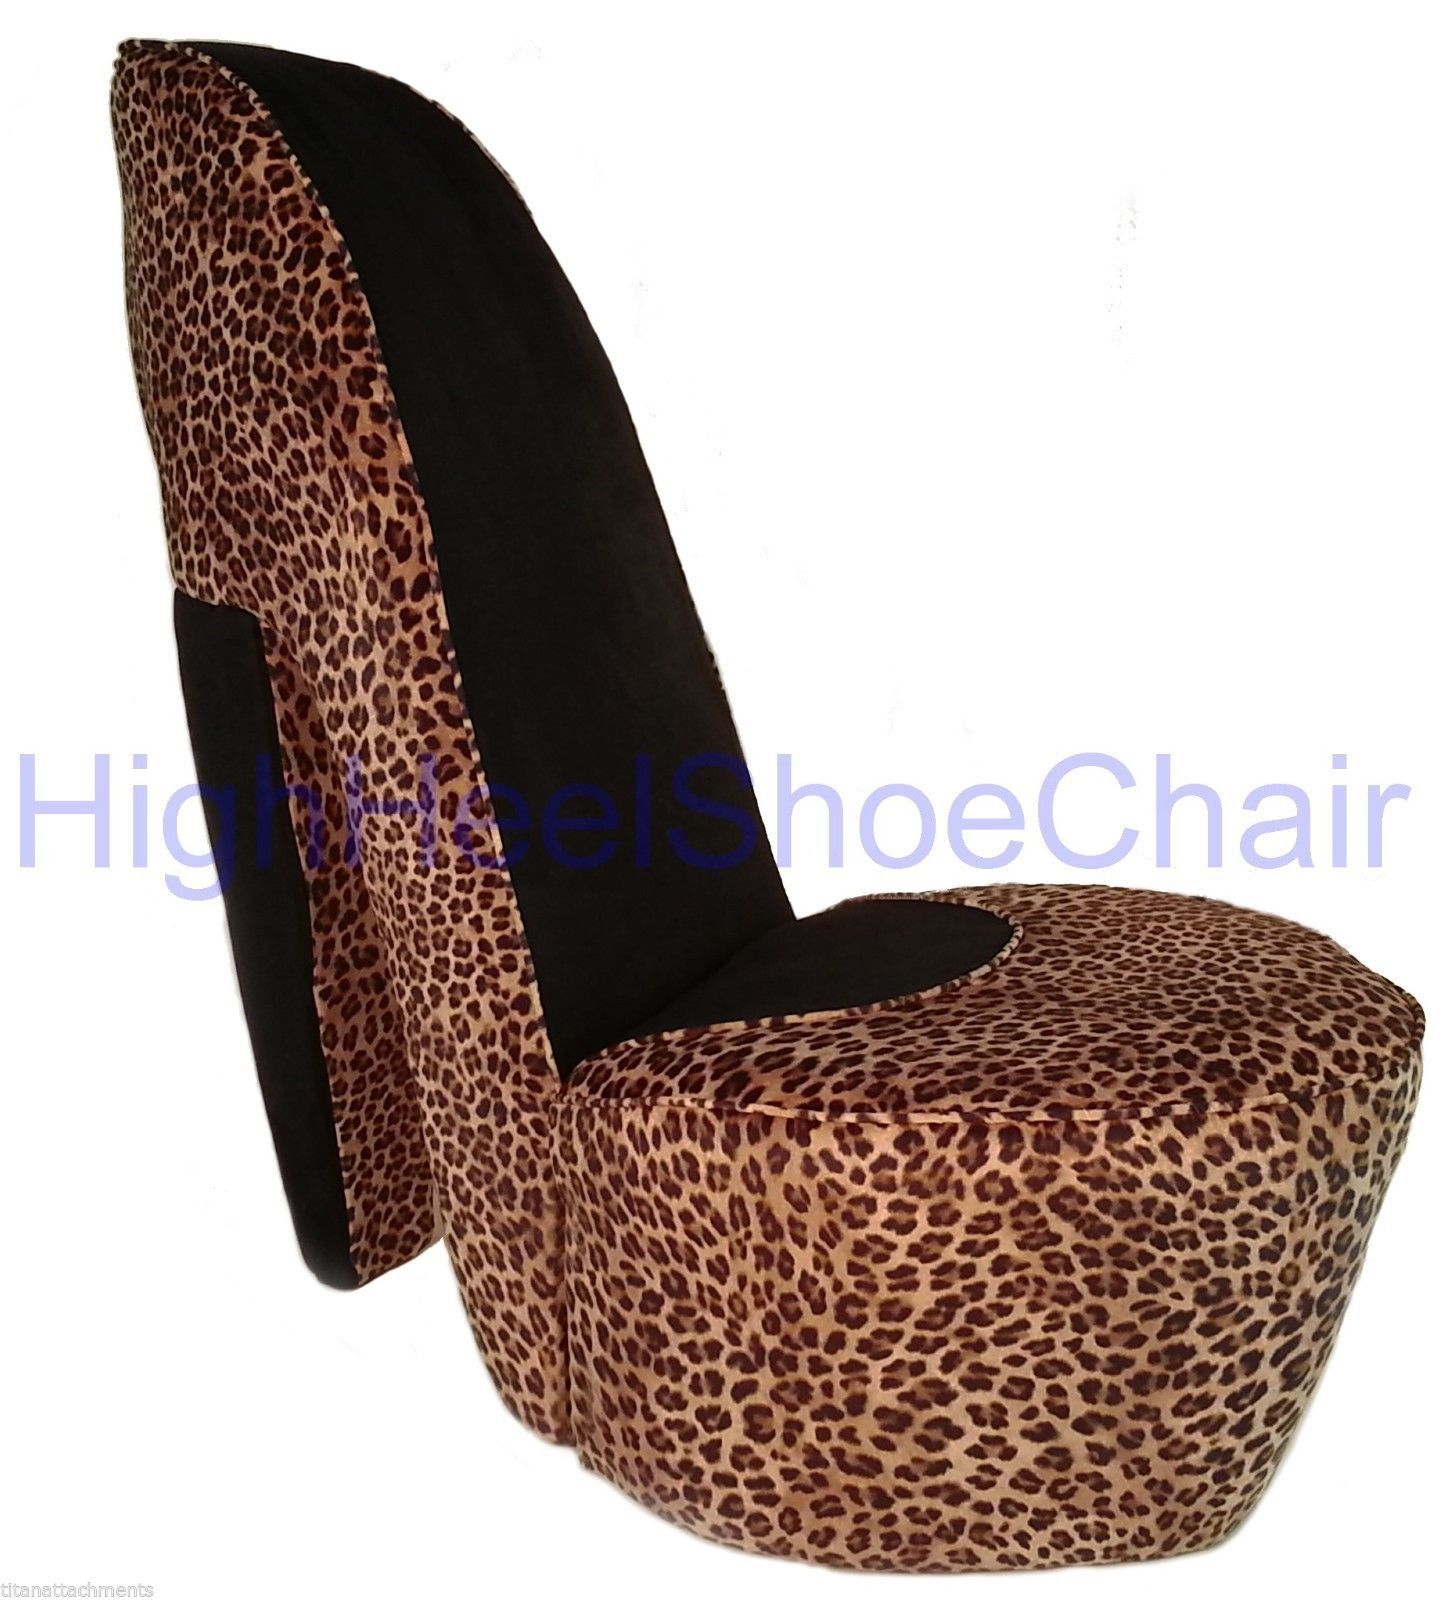 High Heel Chair The Brick